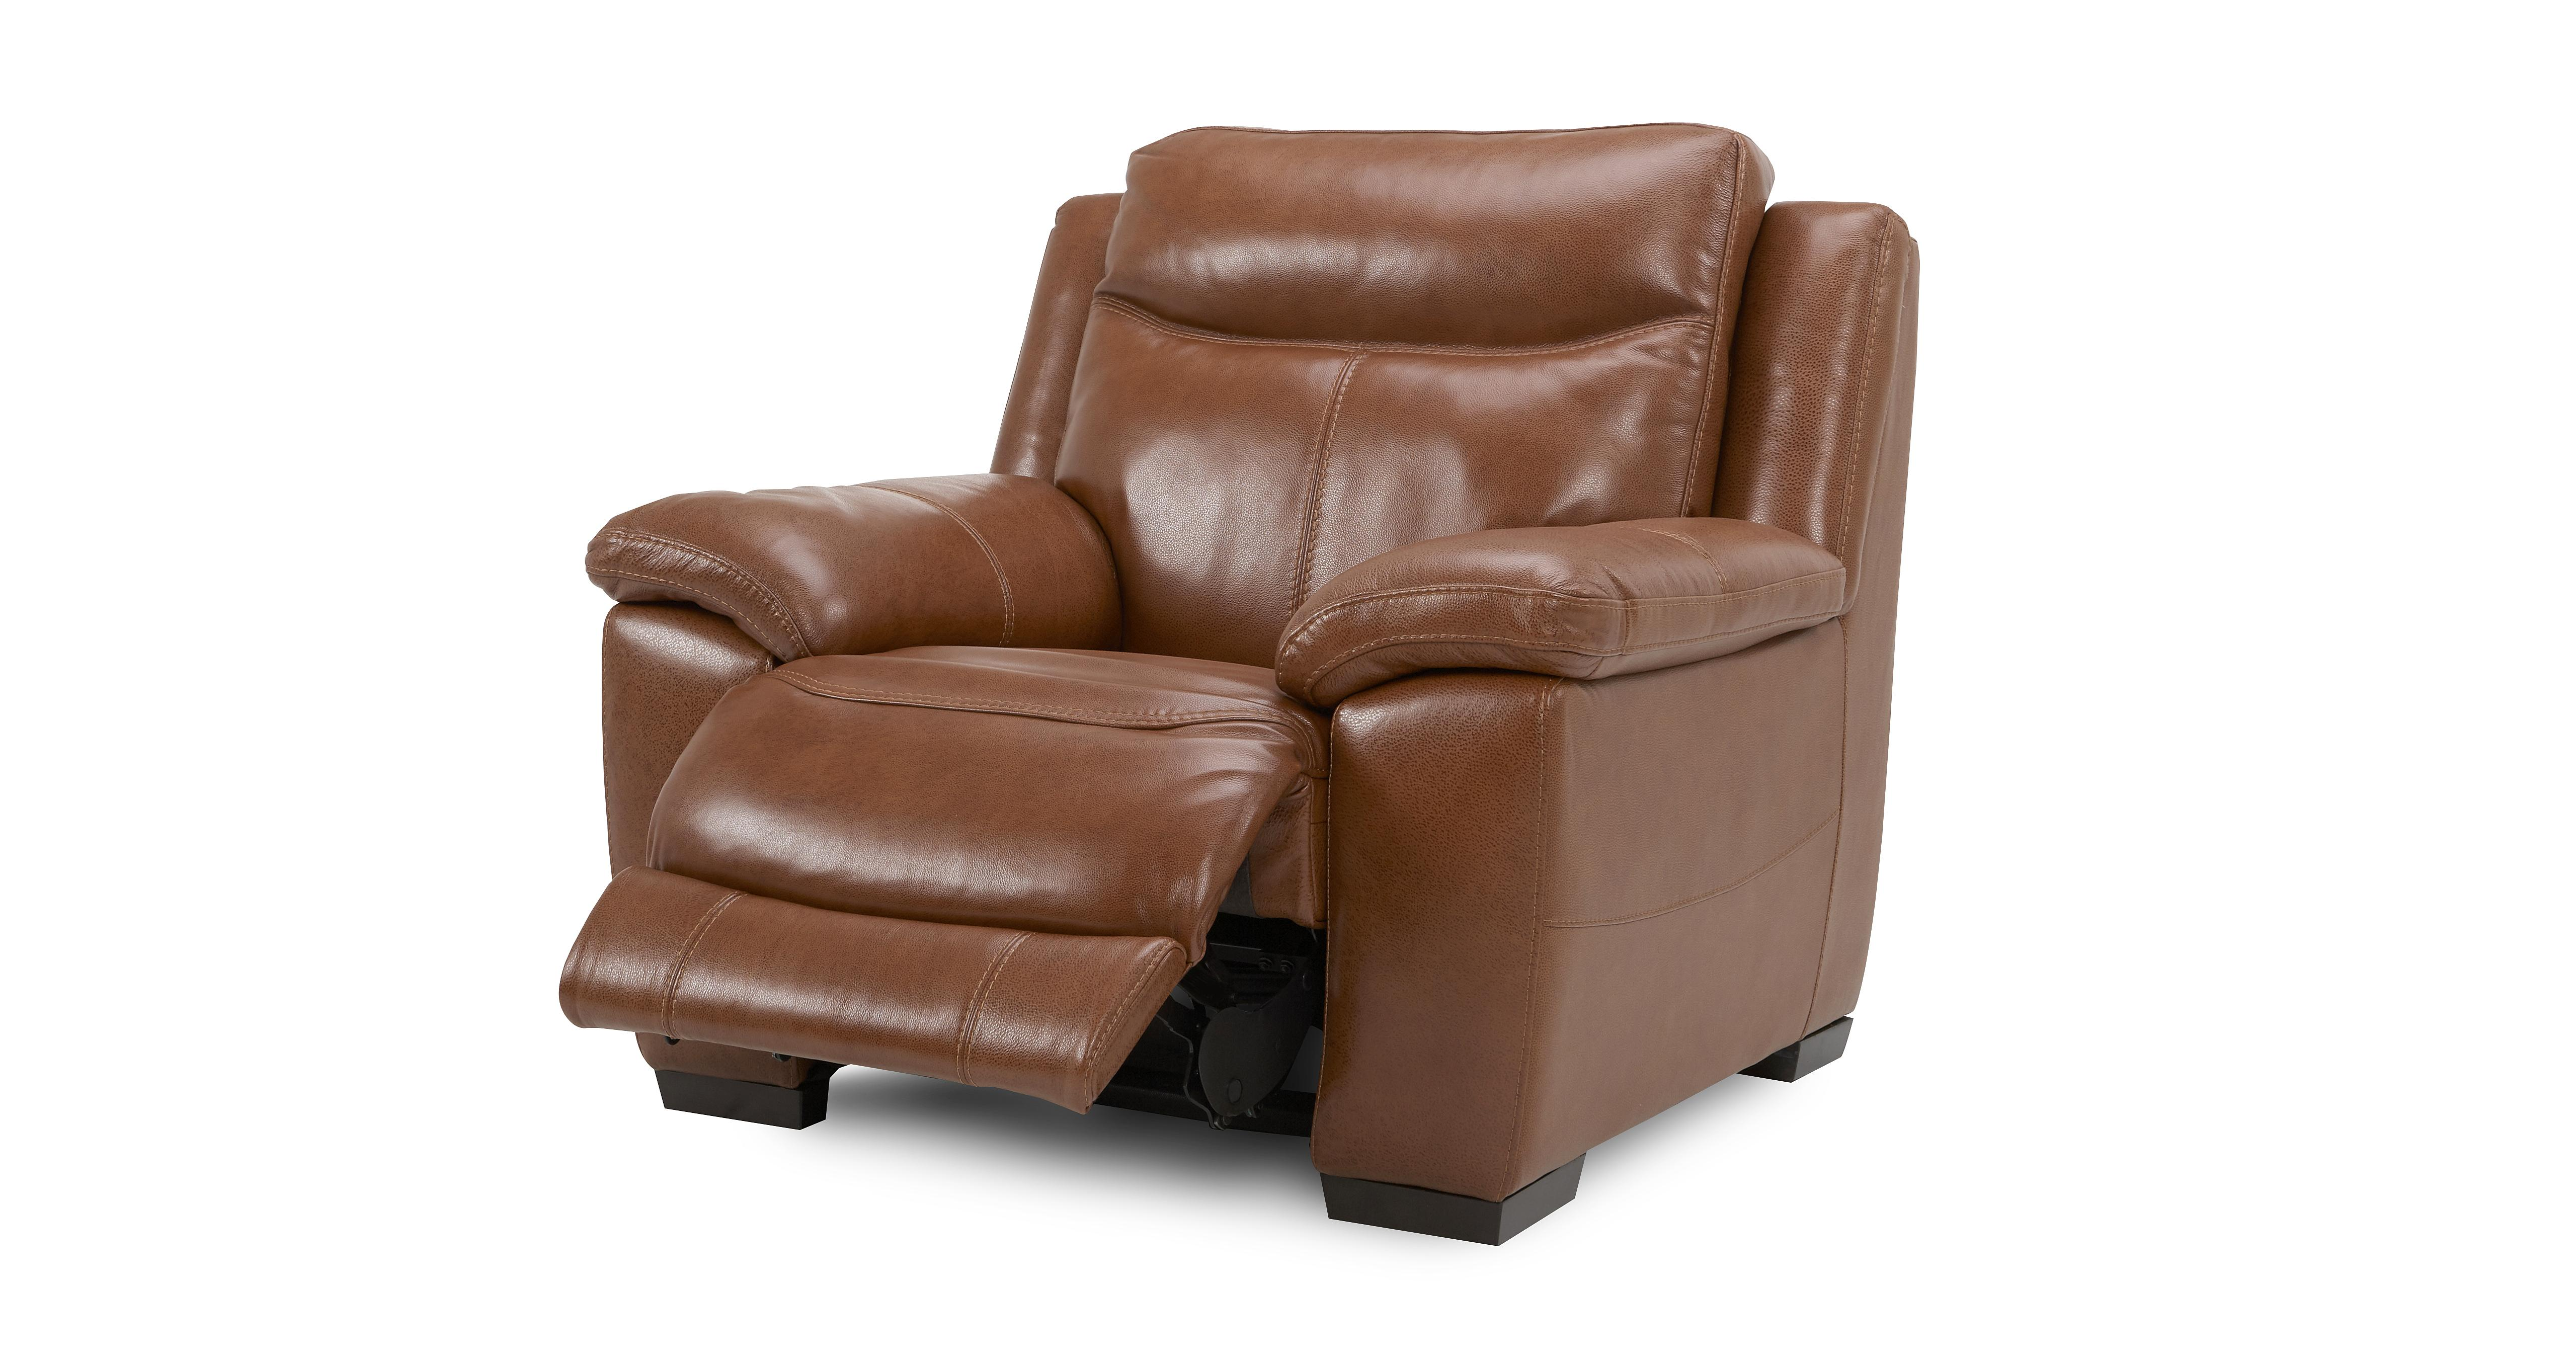 Electric Reclining Chair Liaison Electric Recliner Chair Brazil With Leather Look